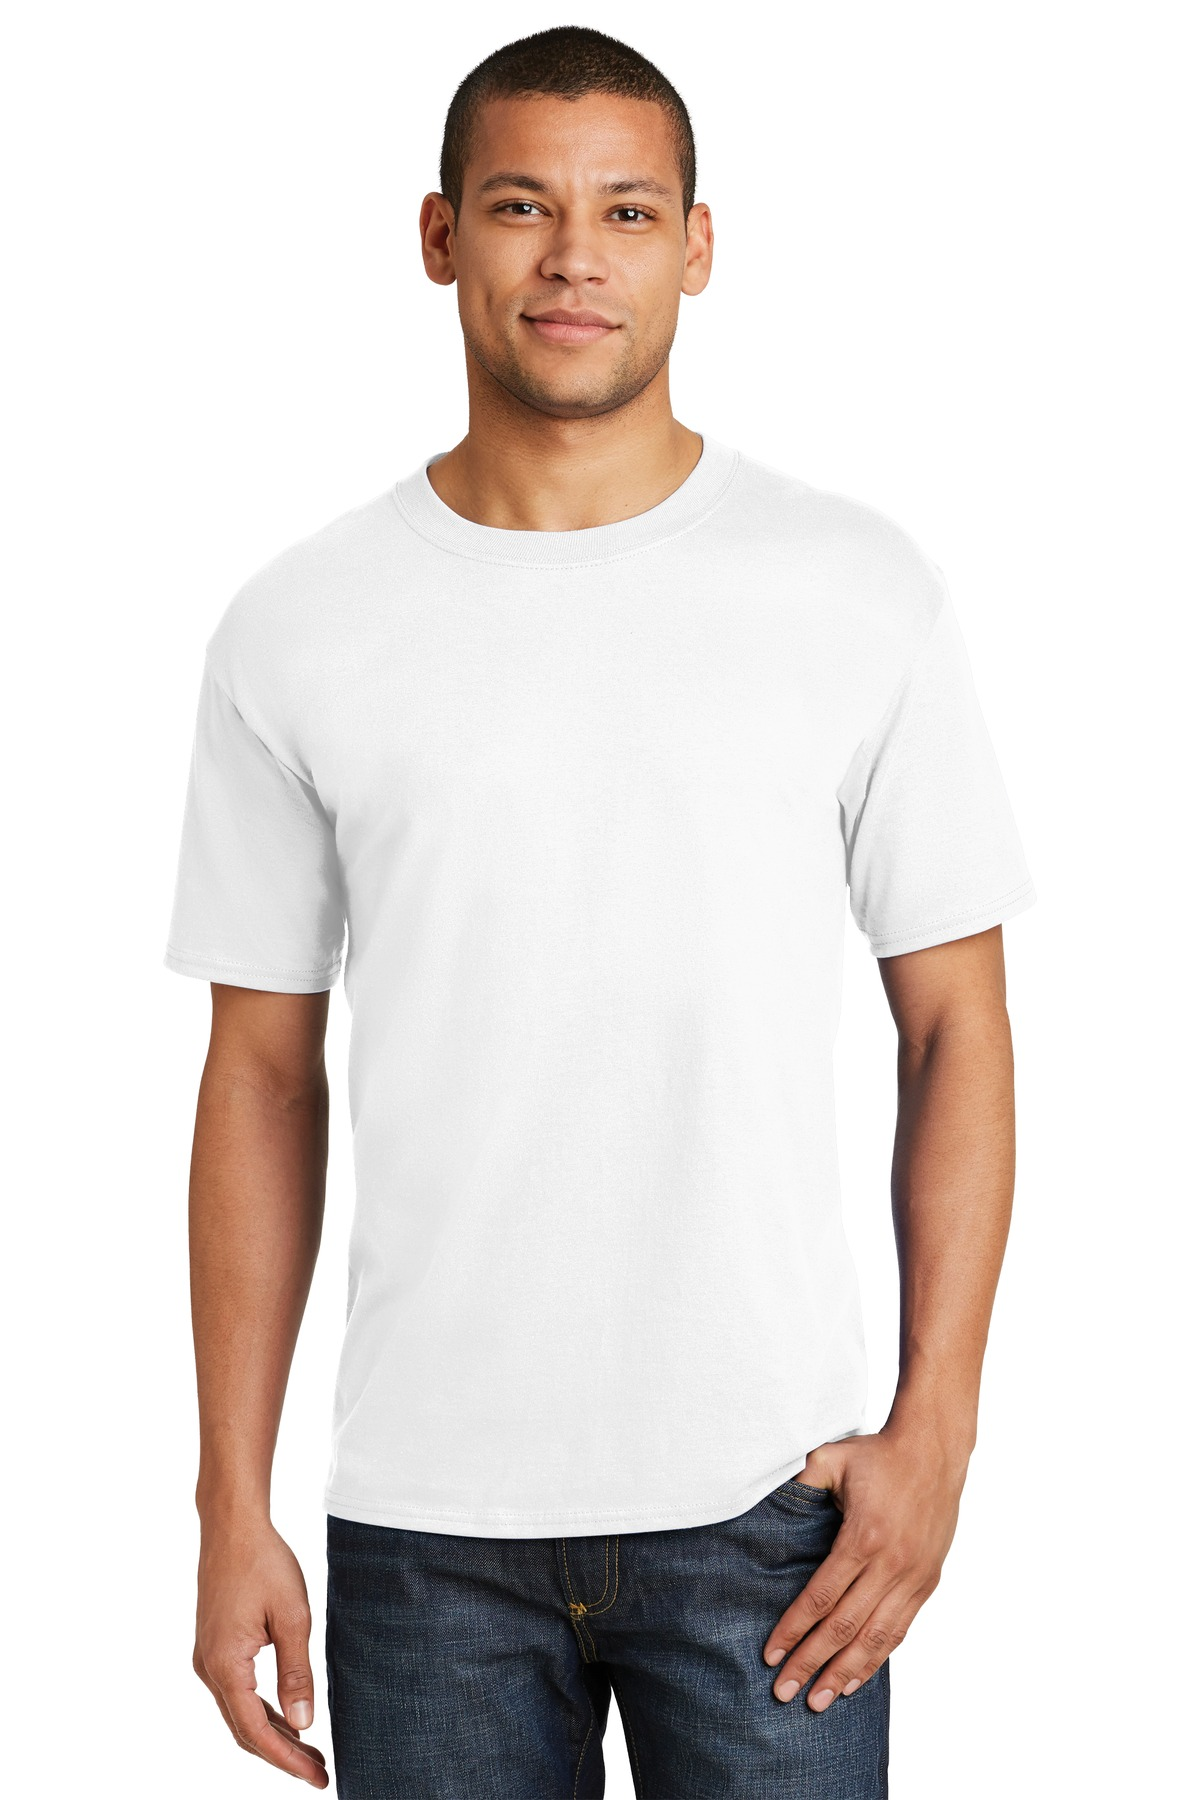 Hanes ®  Beefy-T ®  - 100% Cotton T-Shirt.  5180 - White